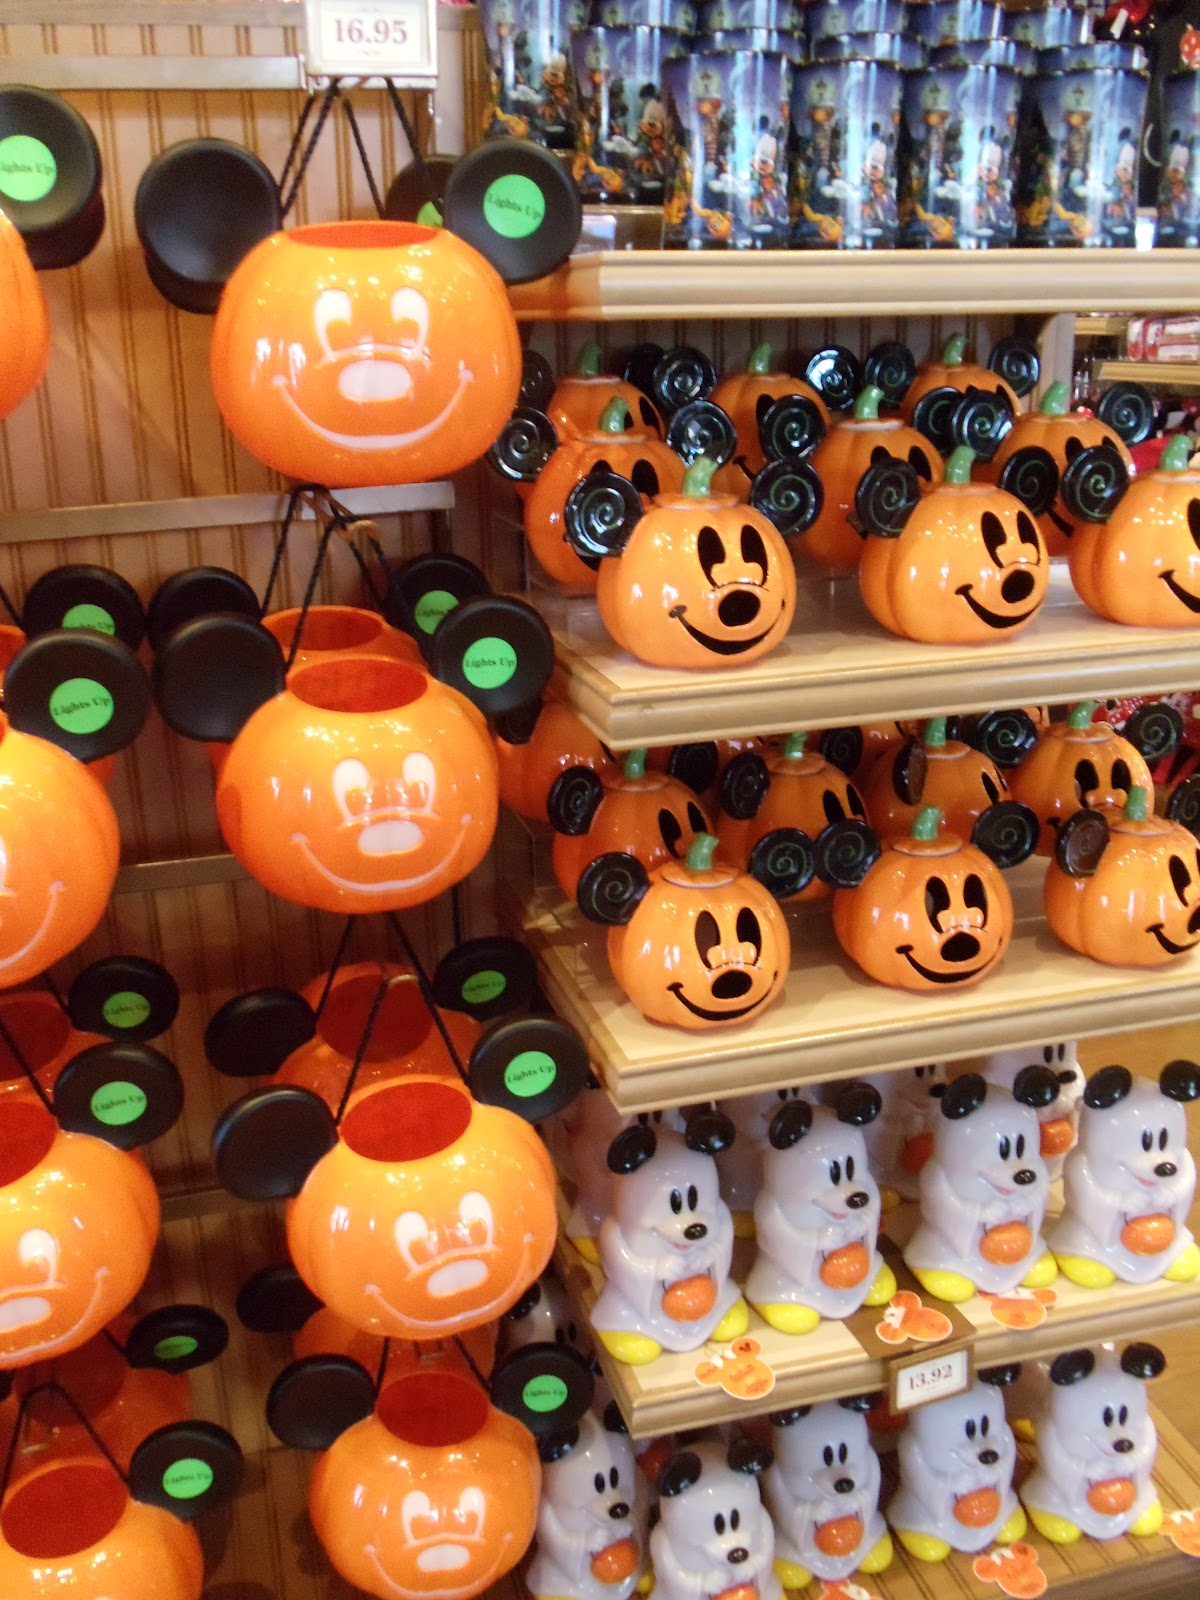 disney halloween merchandise second wave | small crazy world after